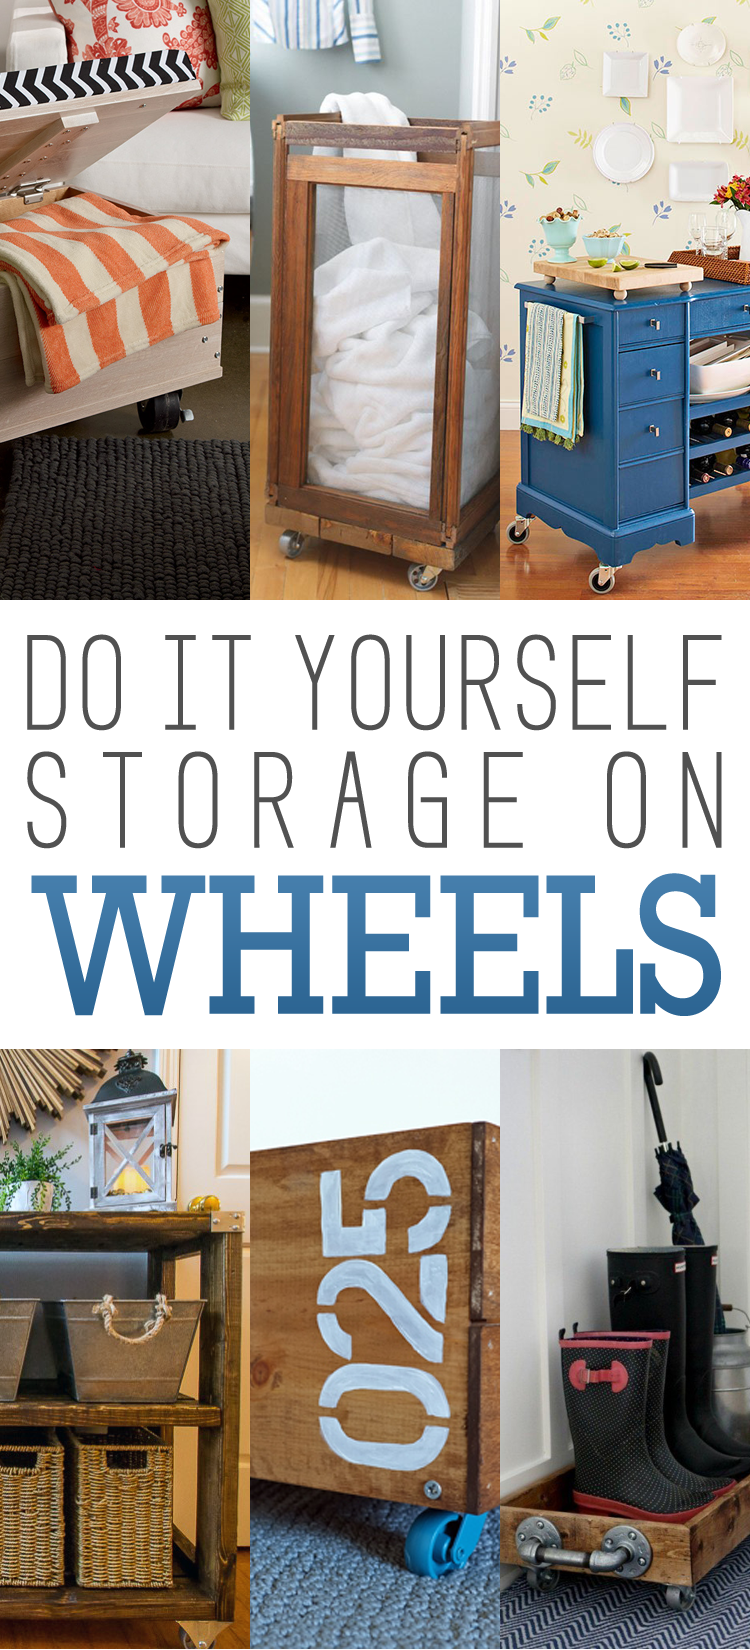 http://thecottagemarket.com/wp-content/uploads/2015/10/Wheels-TOWER-0001.png